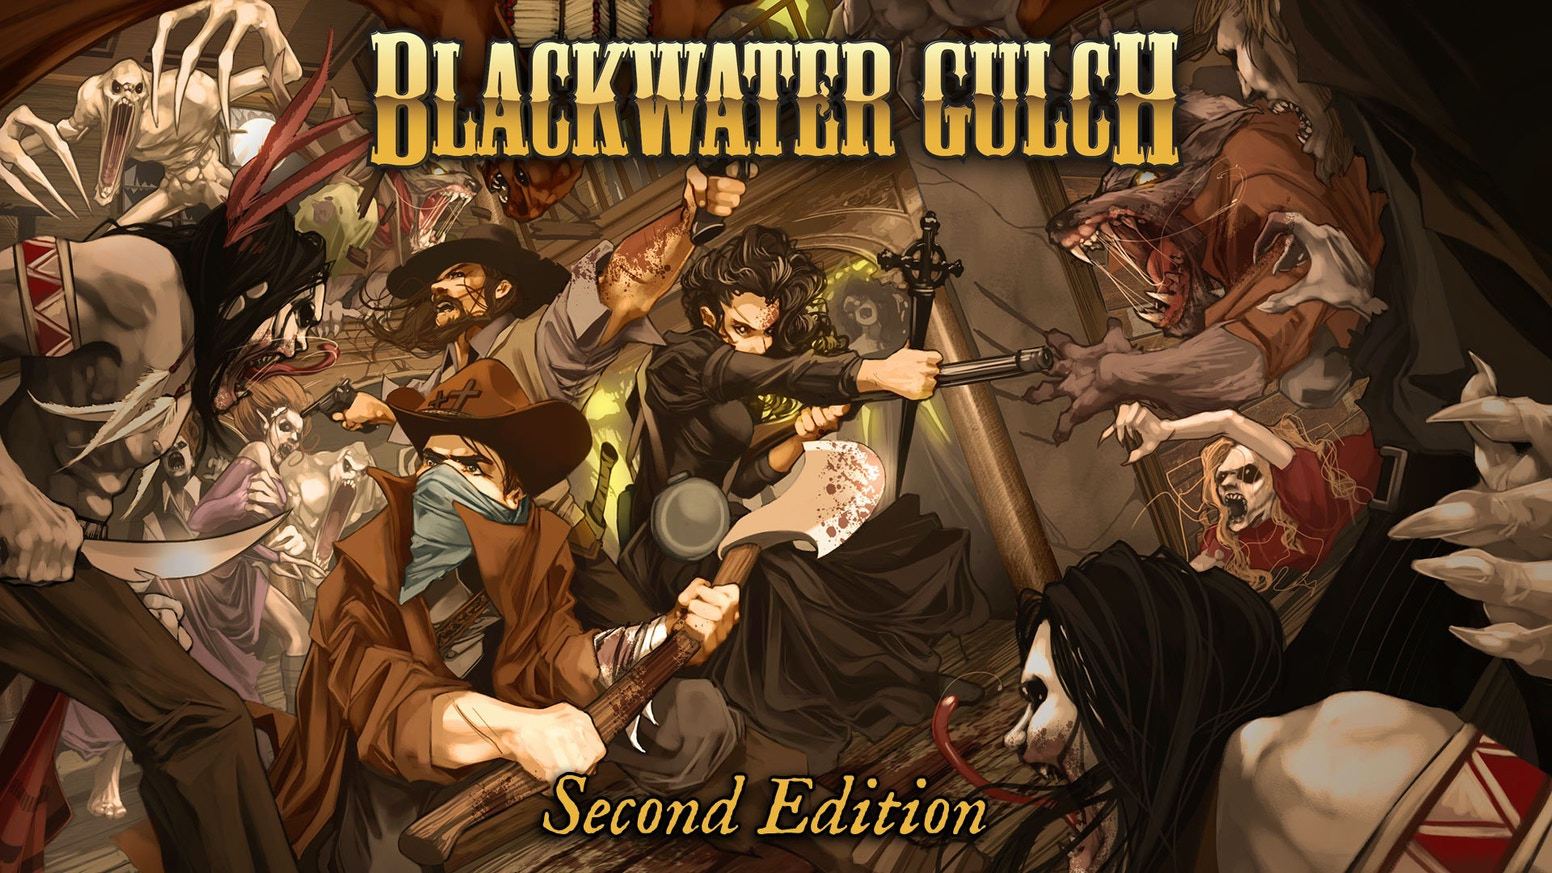 Blackwater Gulch is a Western Horror skirmish game featuring infamous gangs, savage beasts, ravenous dead and malevolent creatures.